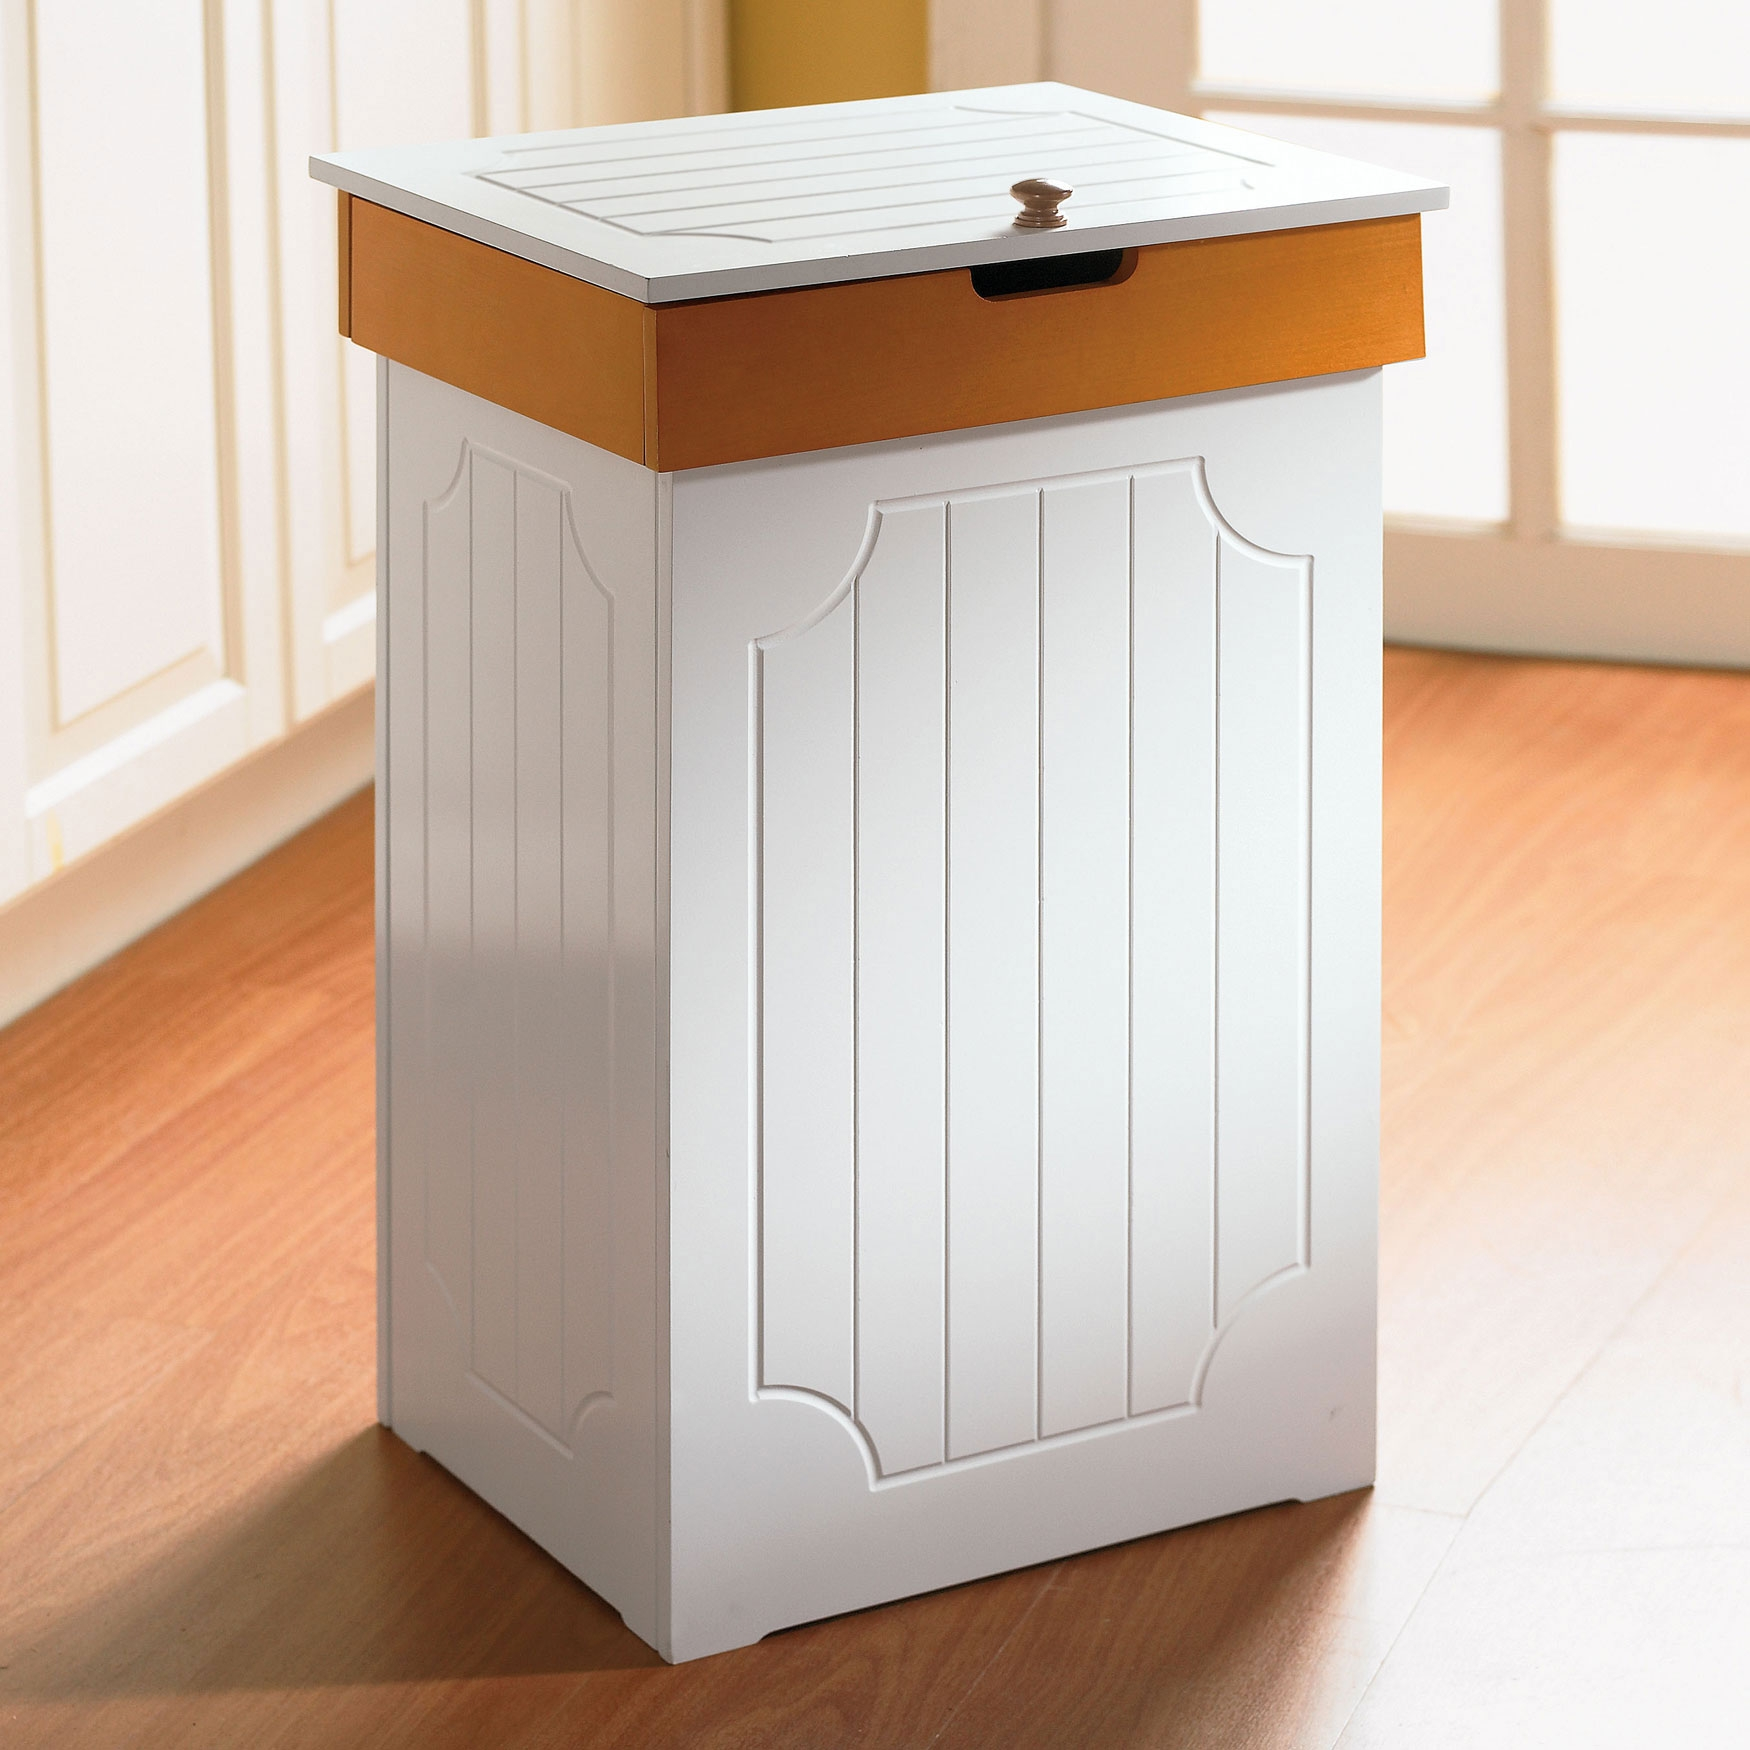 Decorative Wood Kitchen Trash Cans